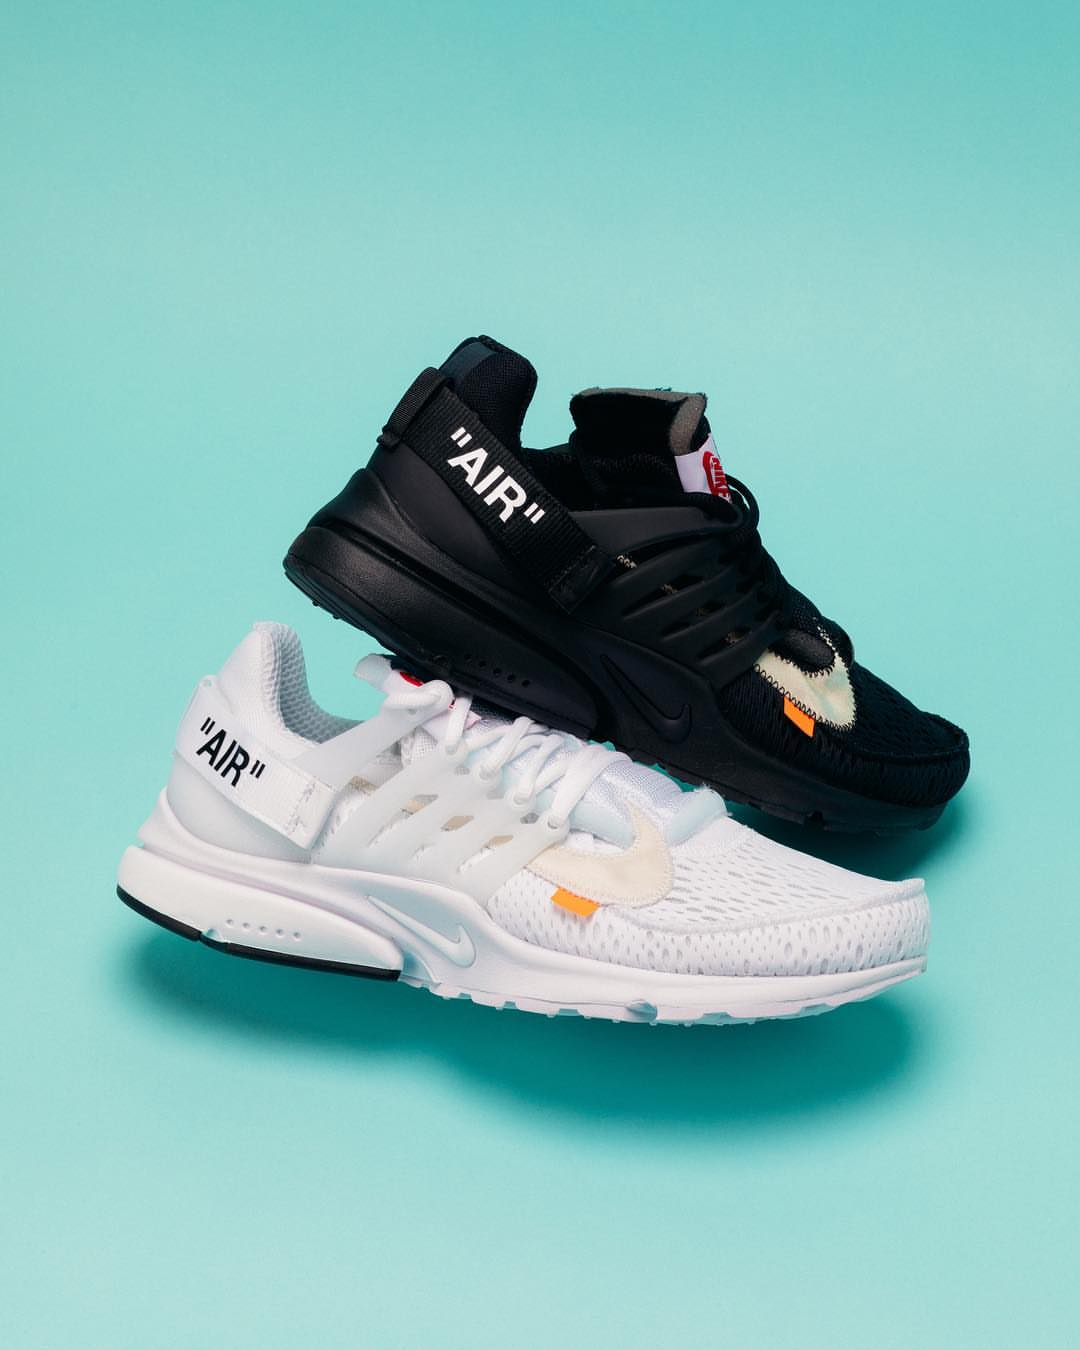 d73fd4b1a1a5 The Off-White x Nike Air Presto  How Will It Sell - StockX News